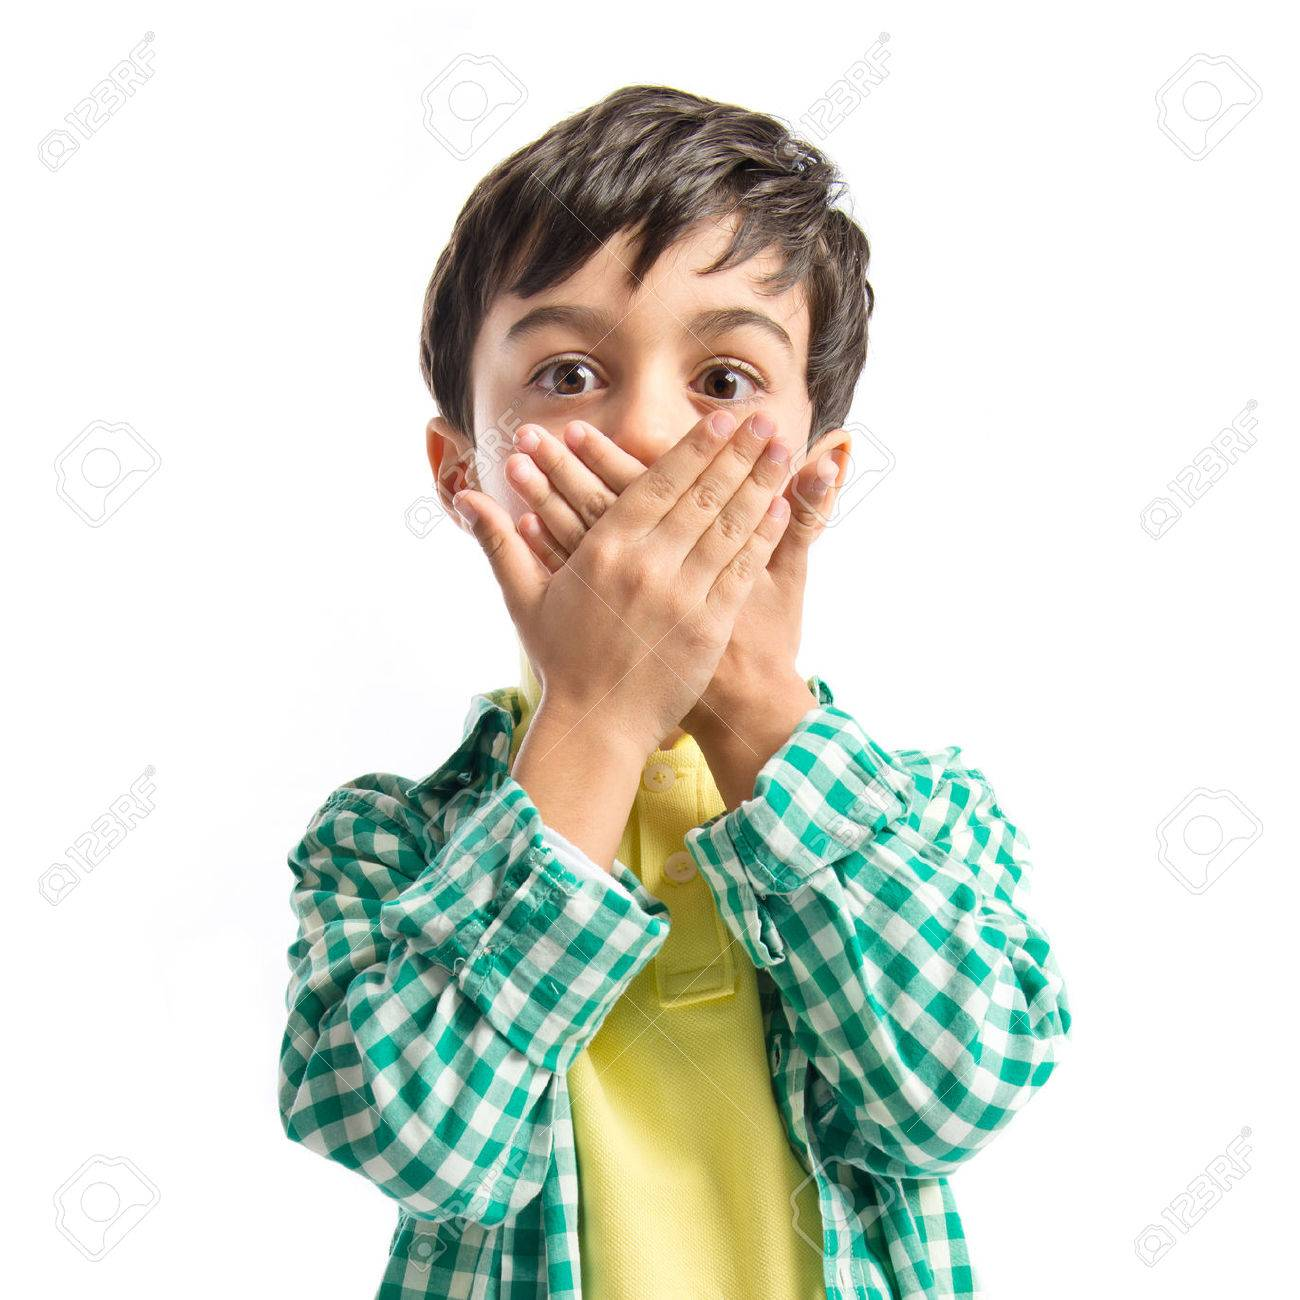 Kid covering his mouth over white background Stock Photo - 28676602